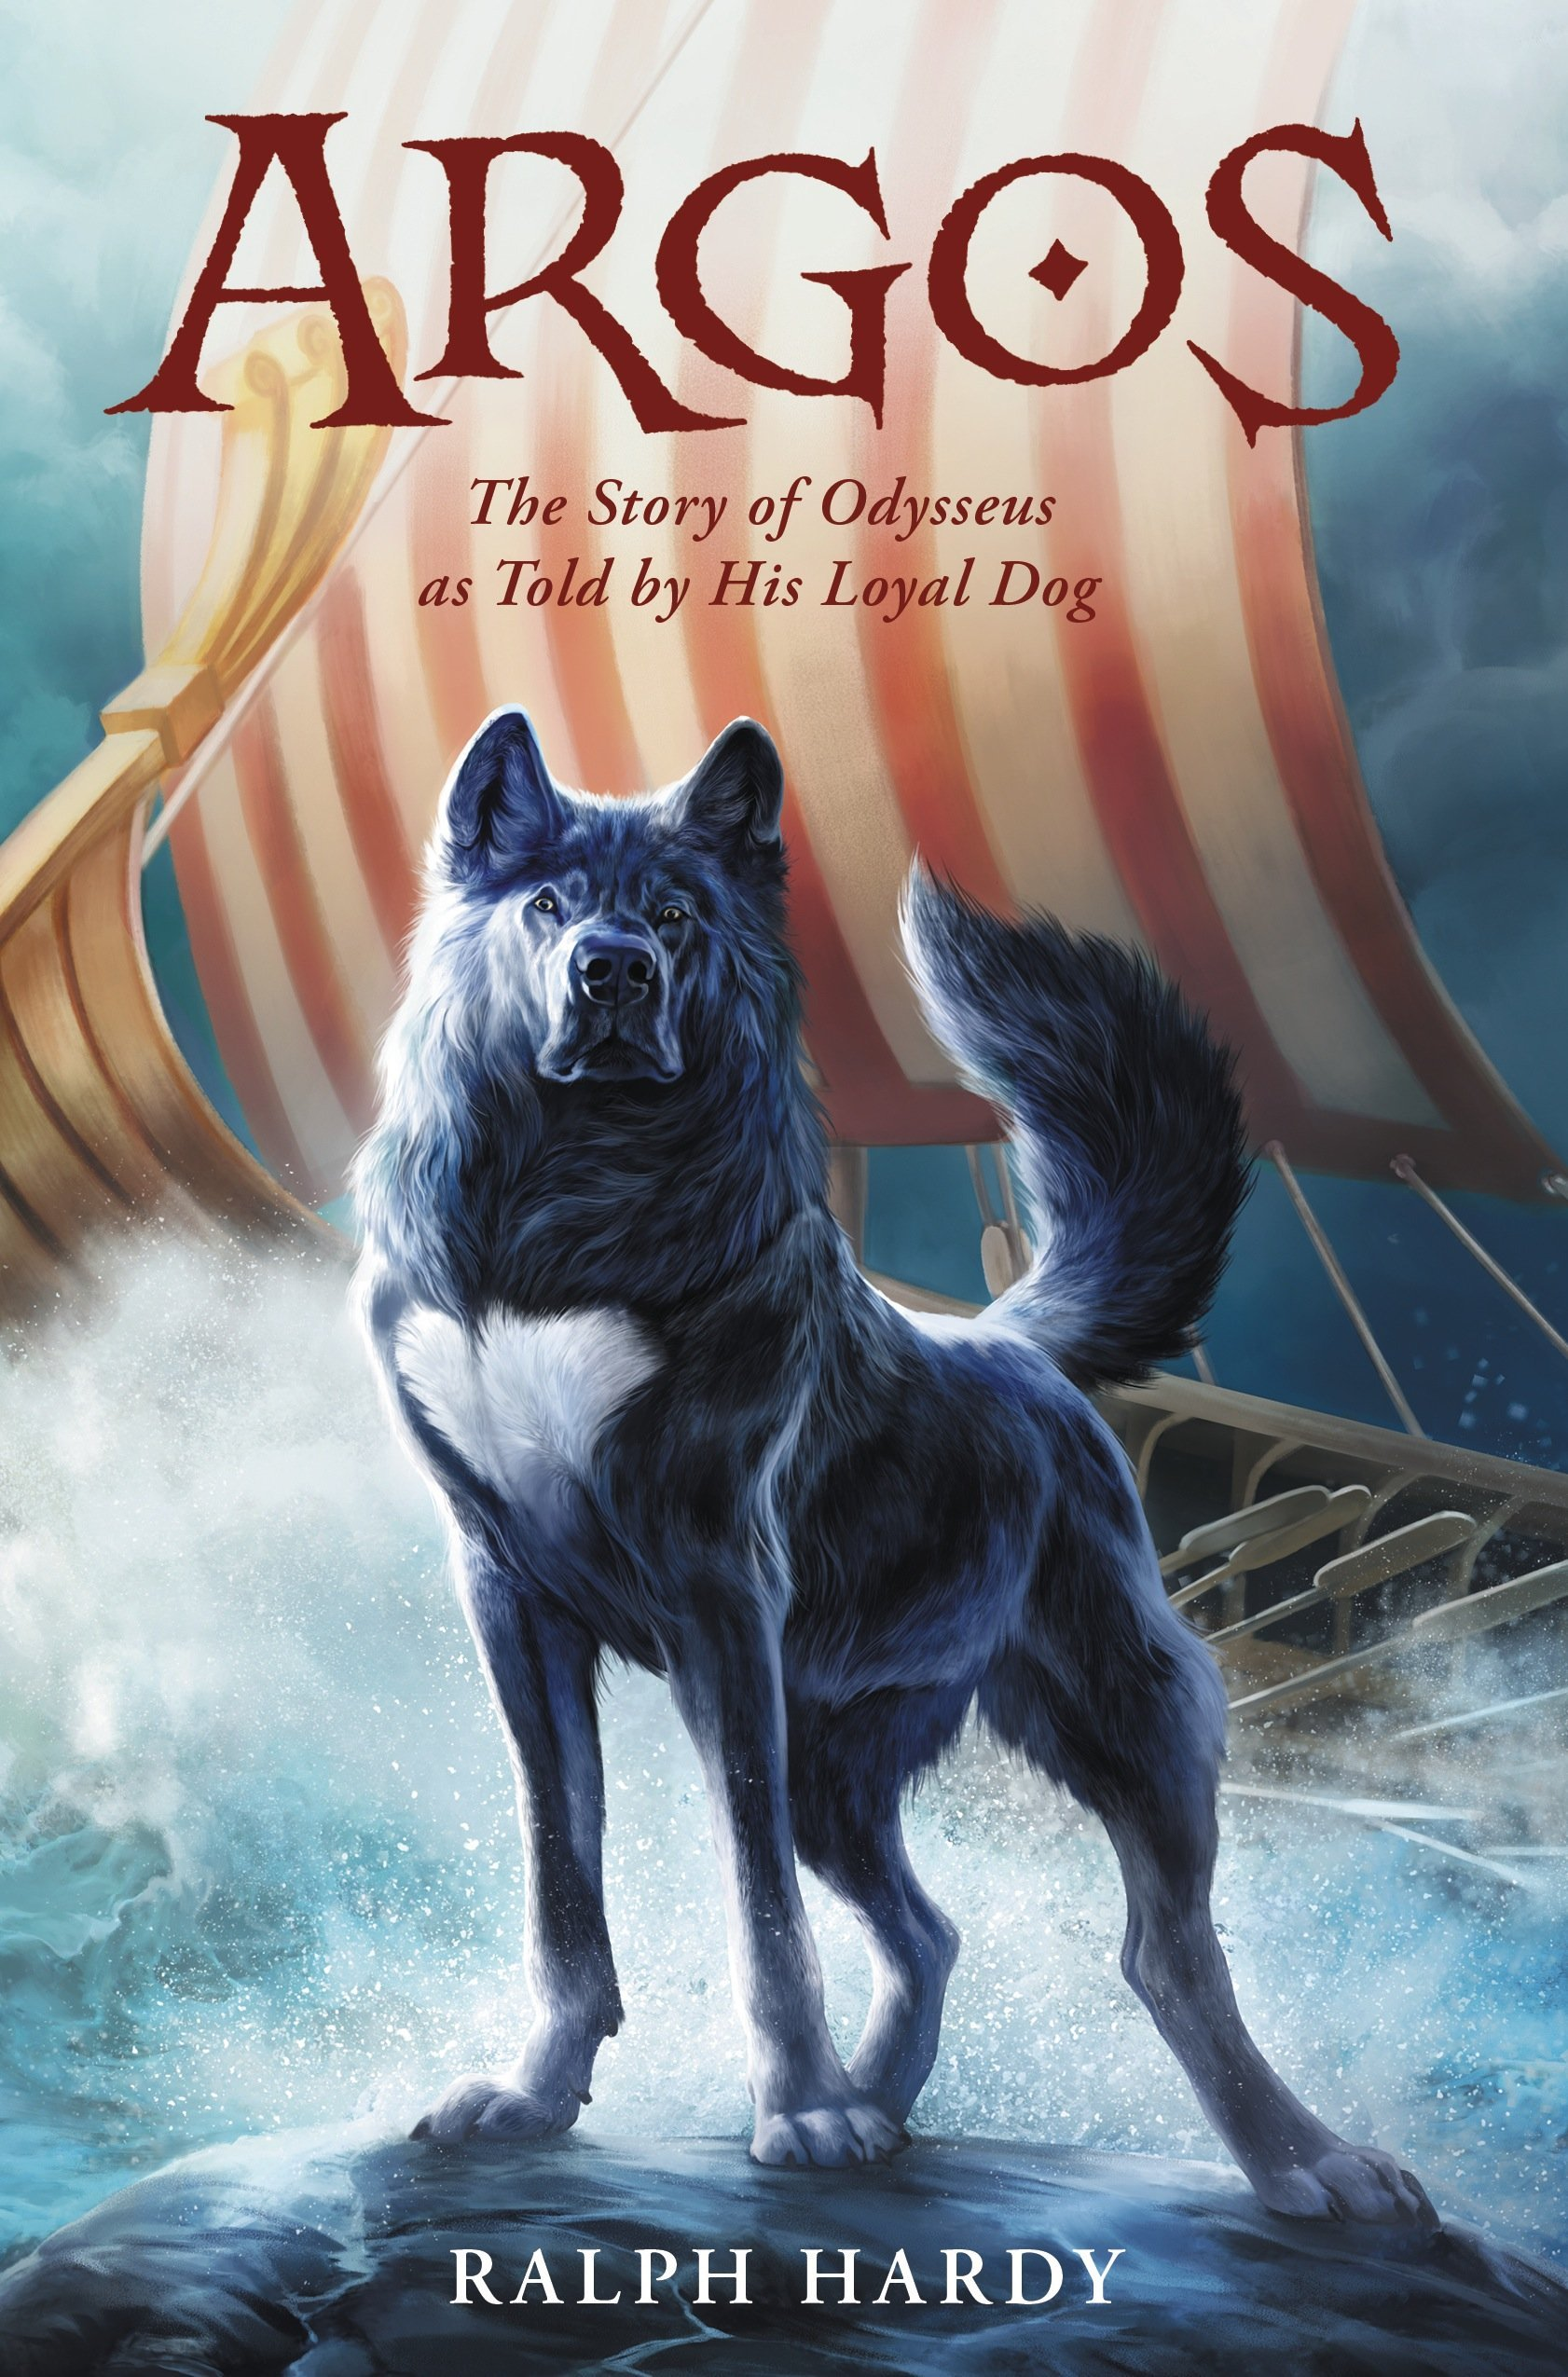 Argos: The Story of Odysseus as Told  by  His Loyal Dog by Ralph Hardy